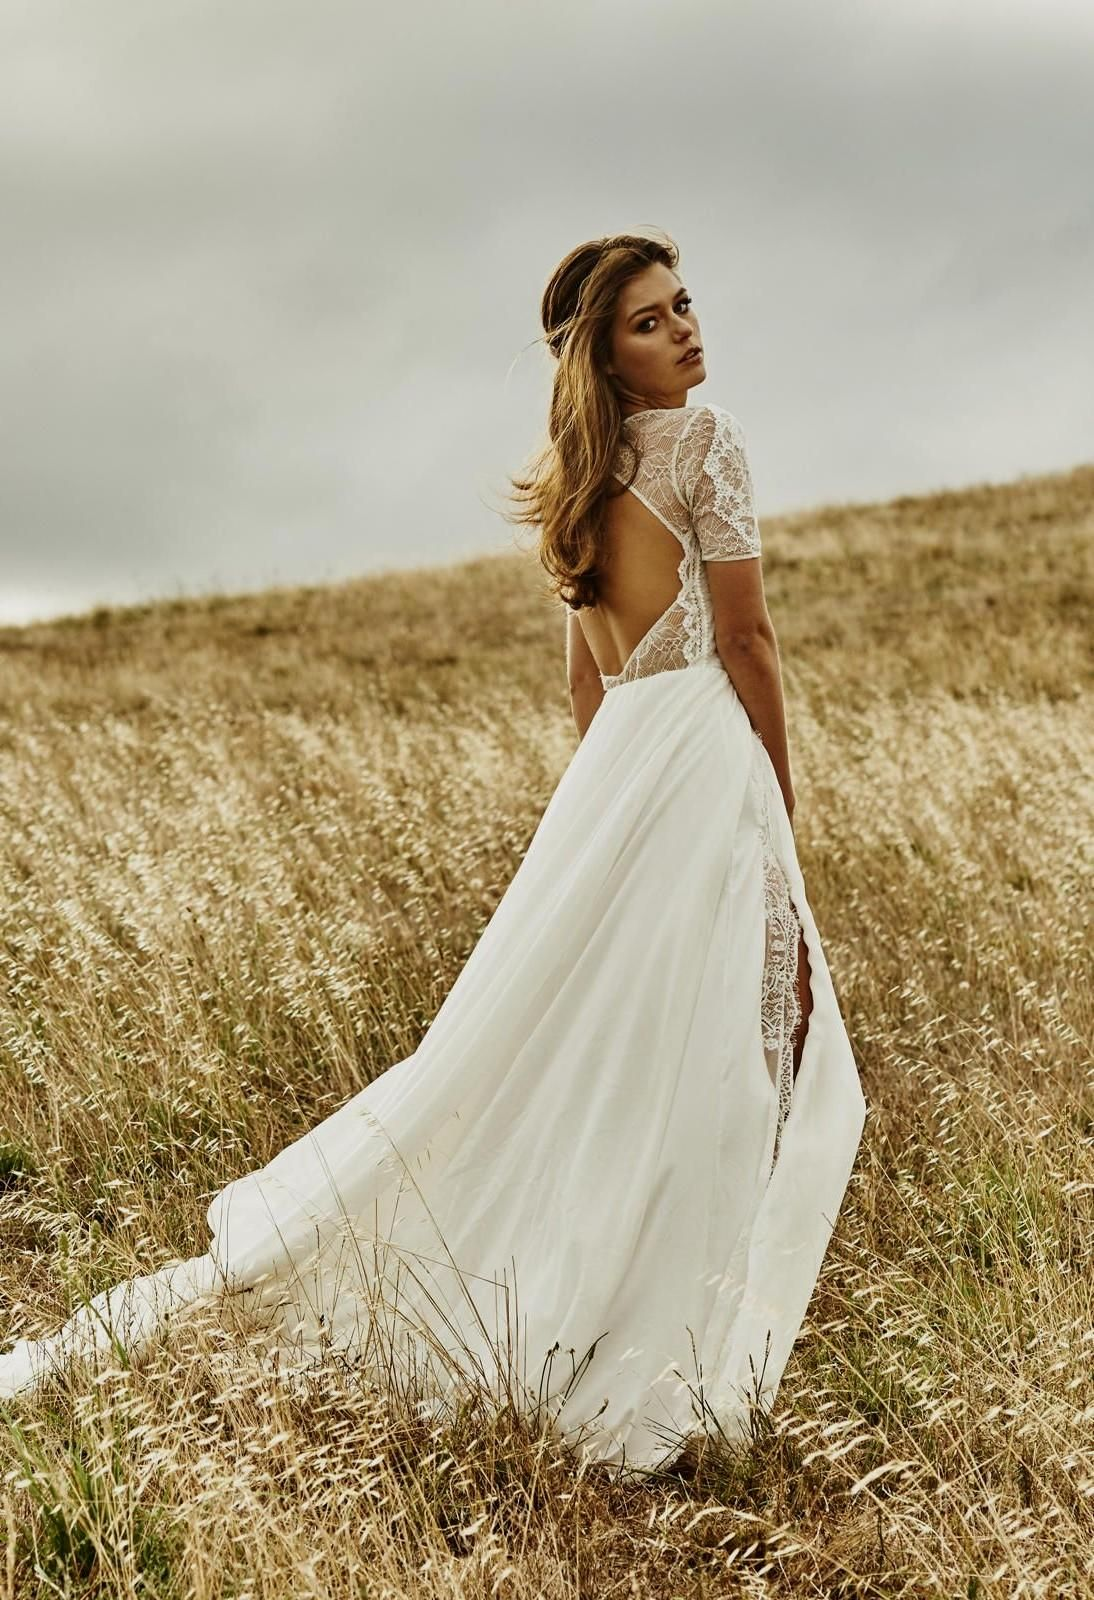 Superior Awesome Southern Style Wedding Dresses Check More At Http://svesty.com/